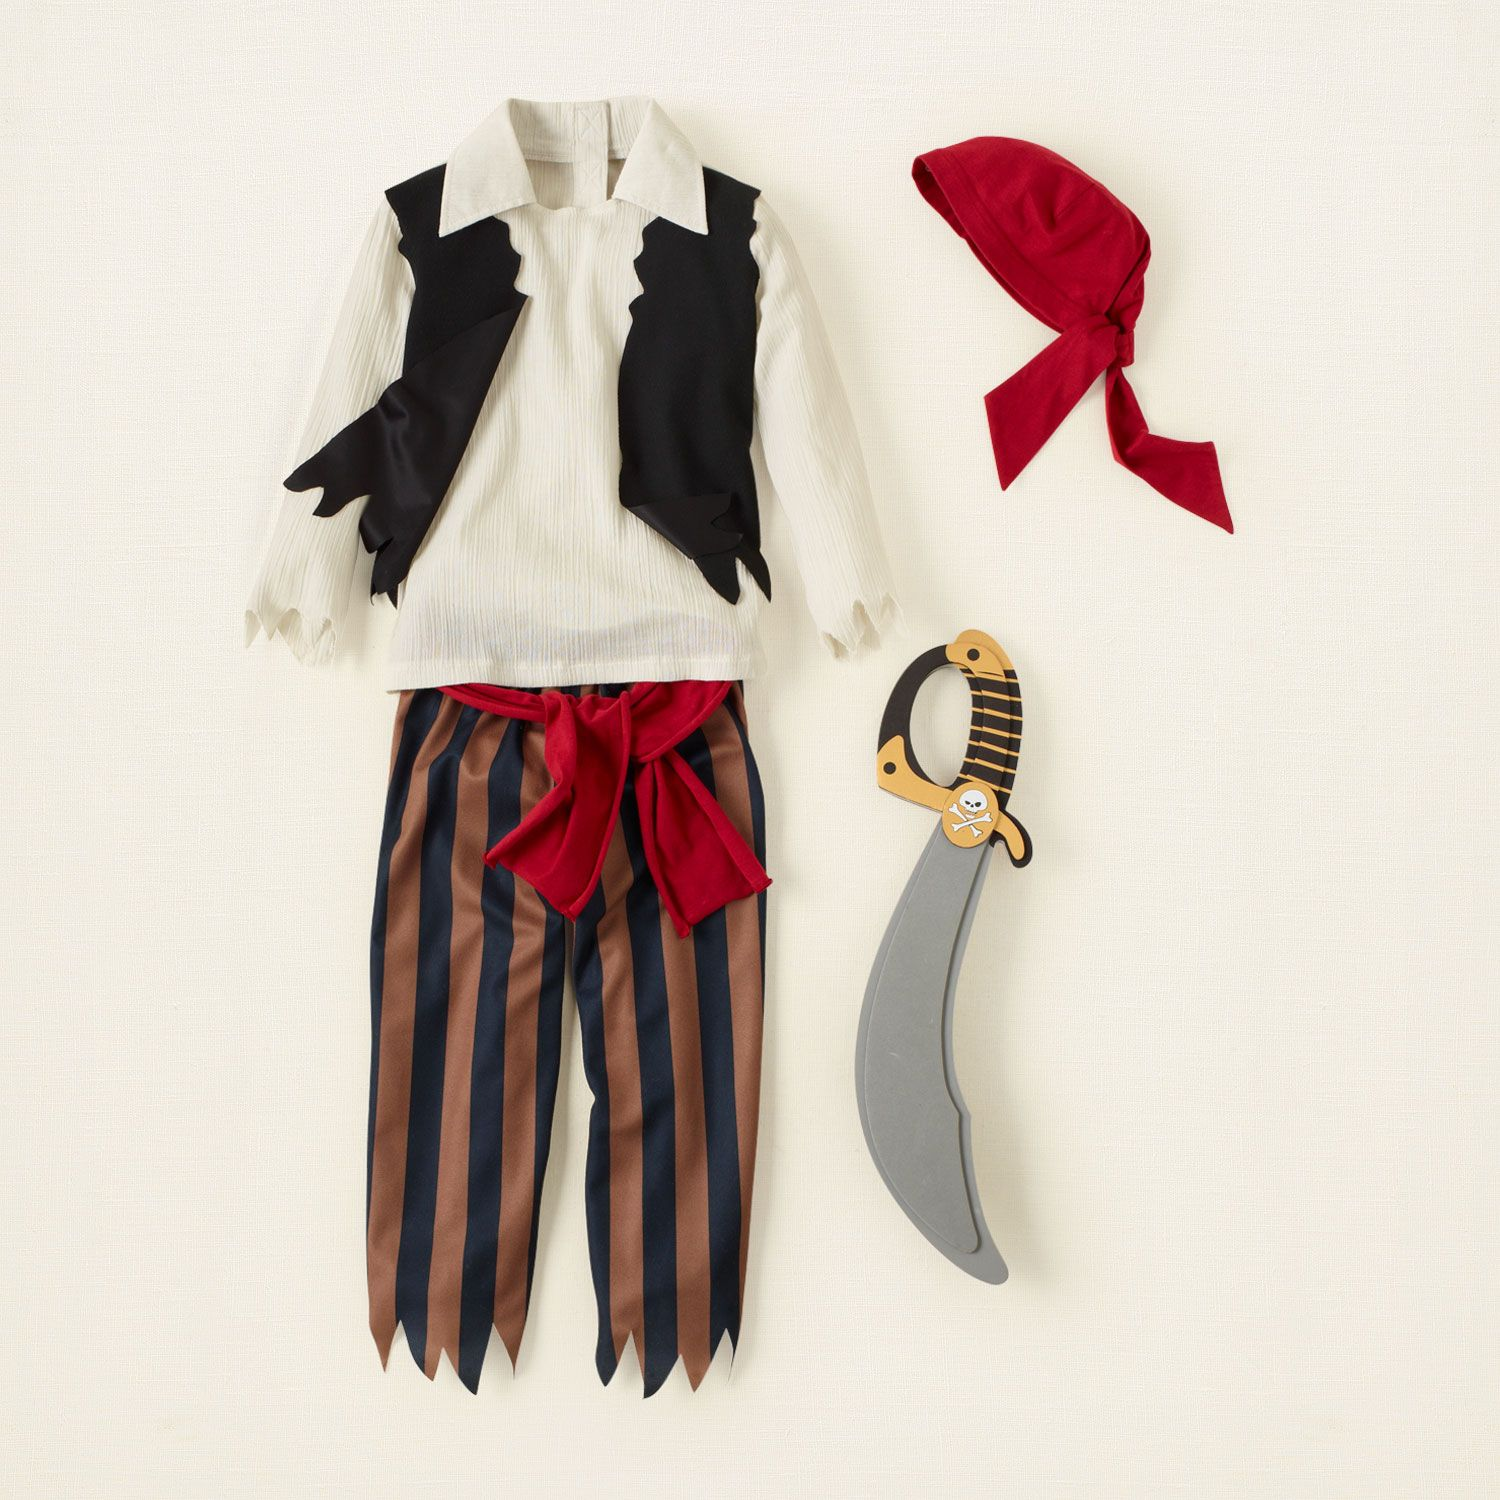 Toddler Pirate Costume - Party City $9.99 | Disney cruise ...